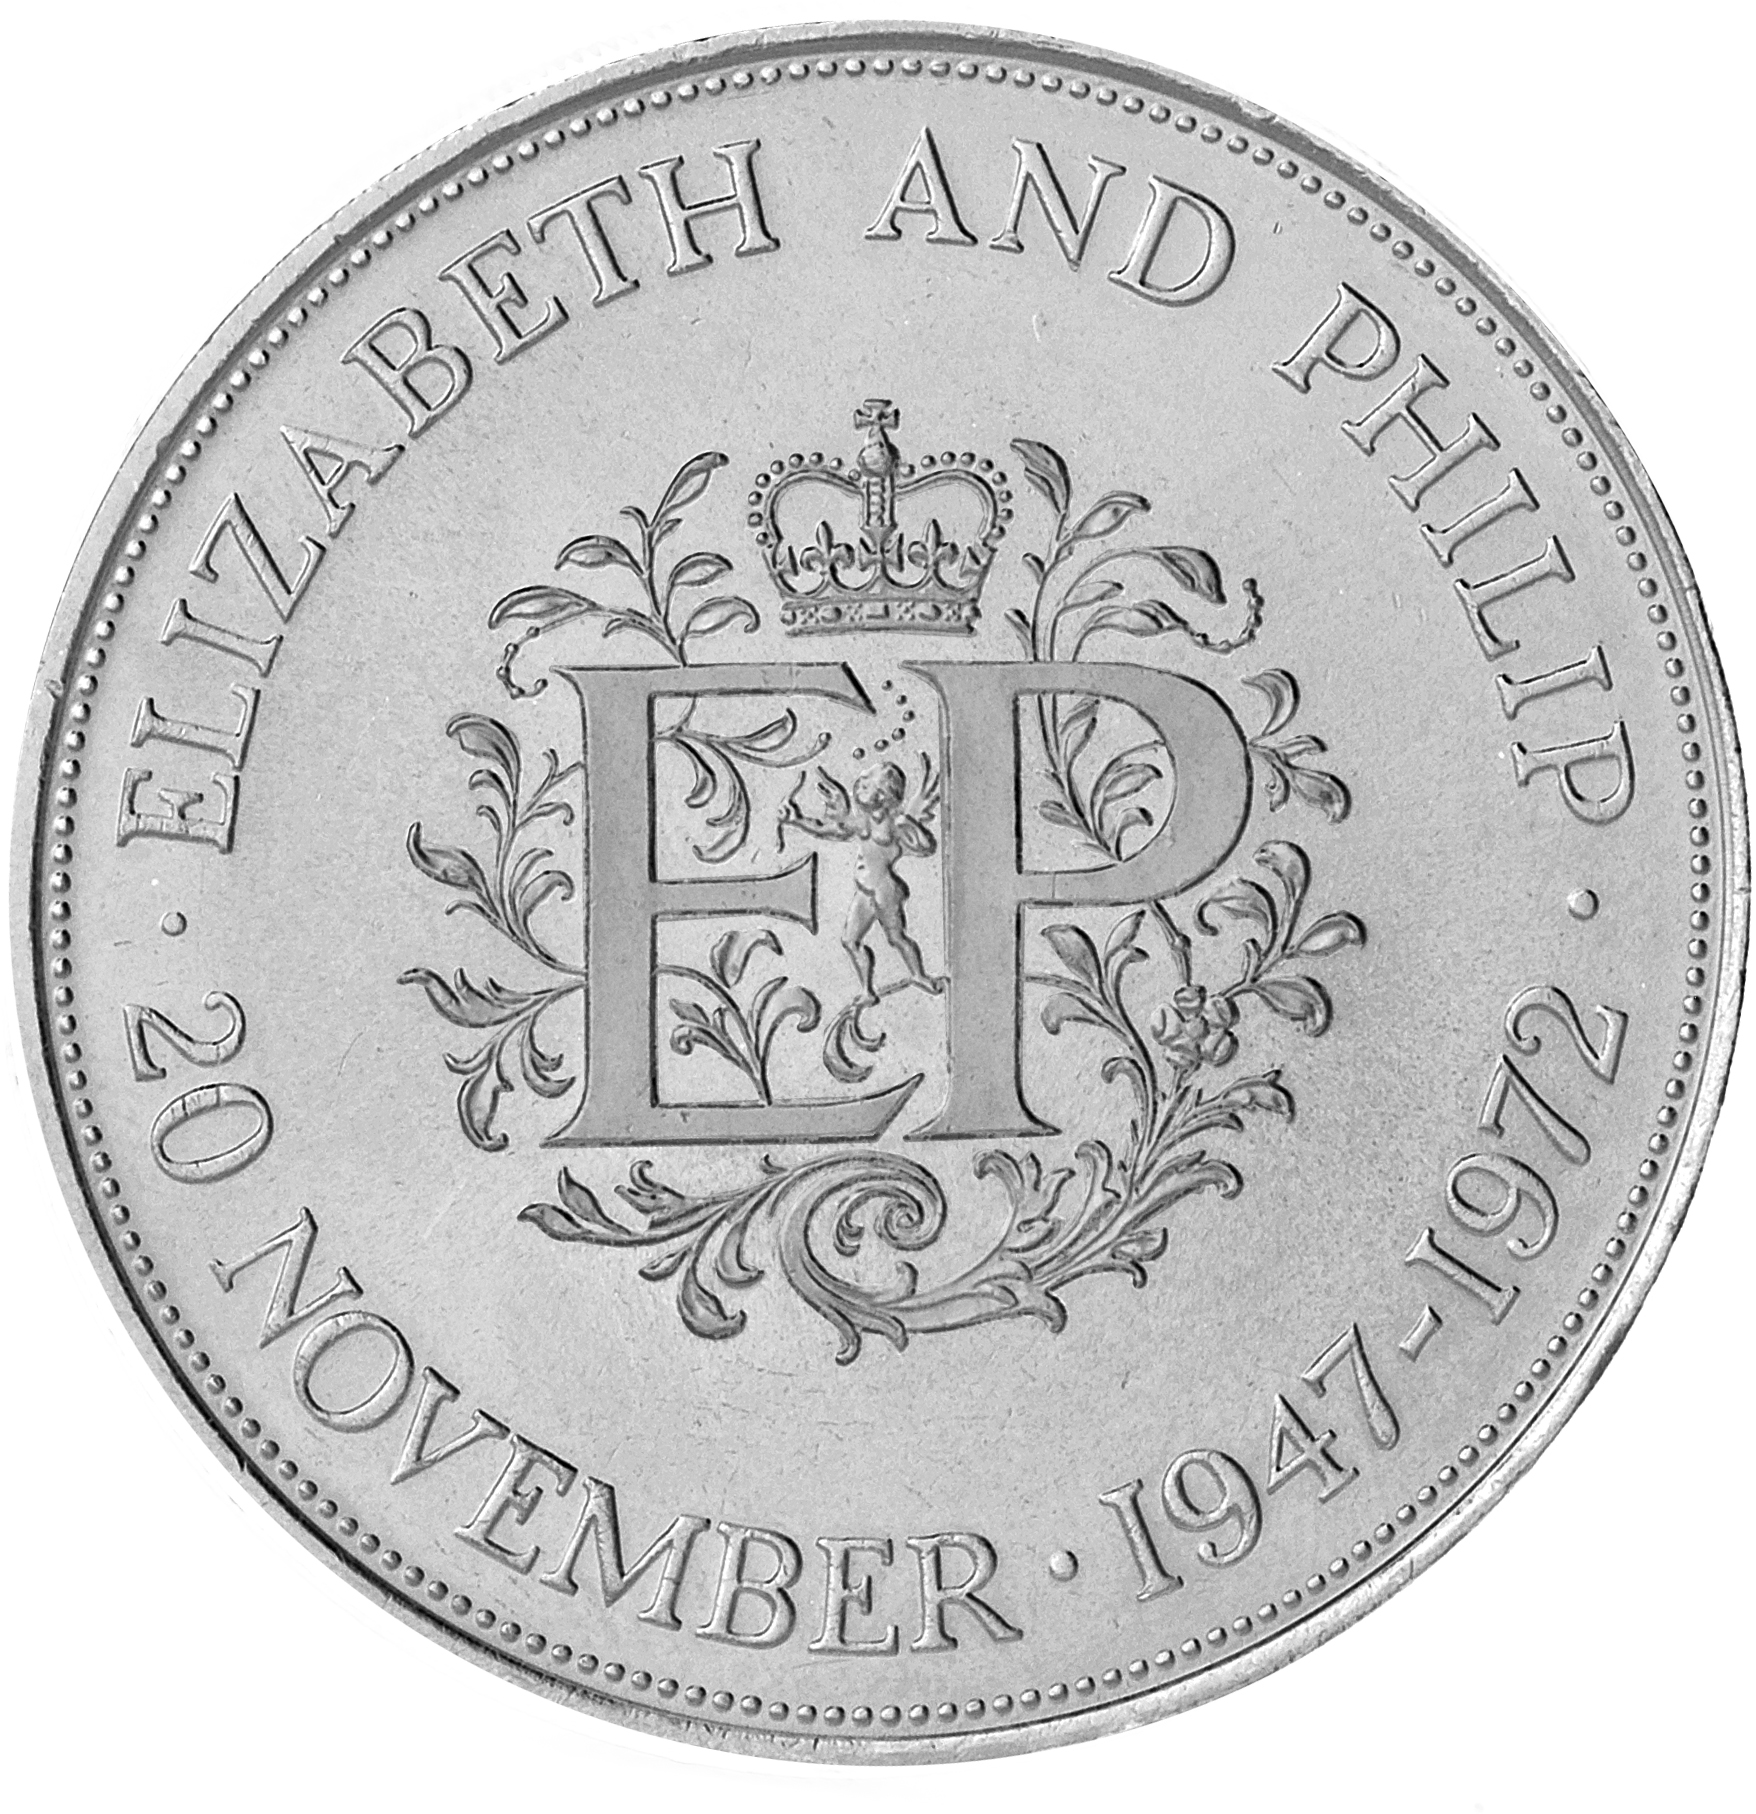 995g - 25 pence – the 'unknown' denomination